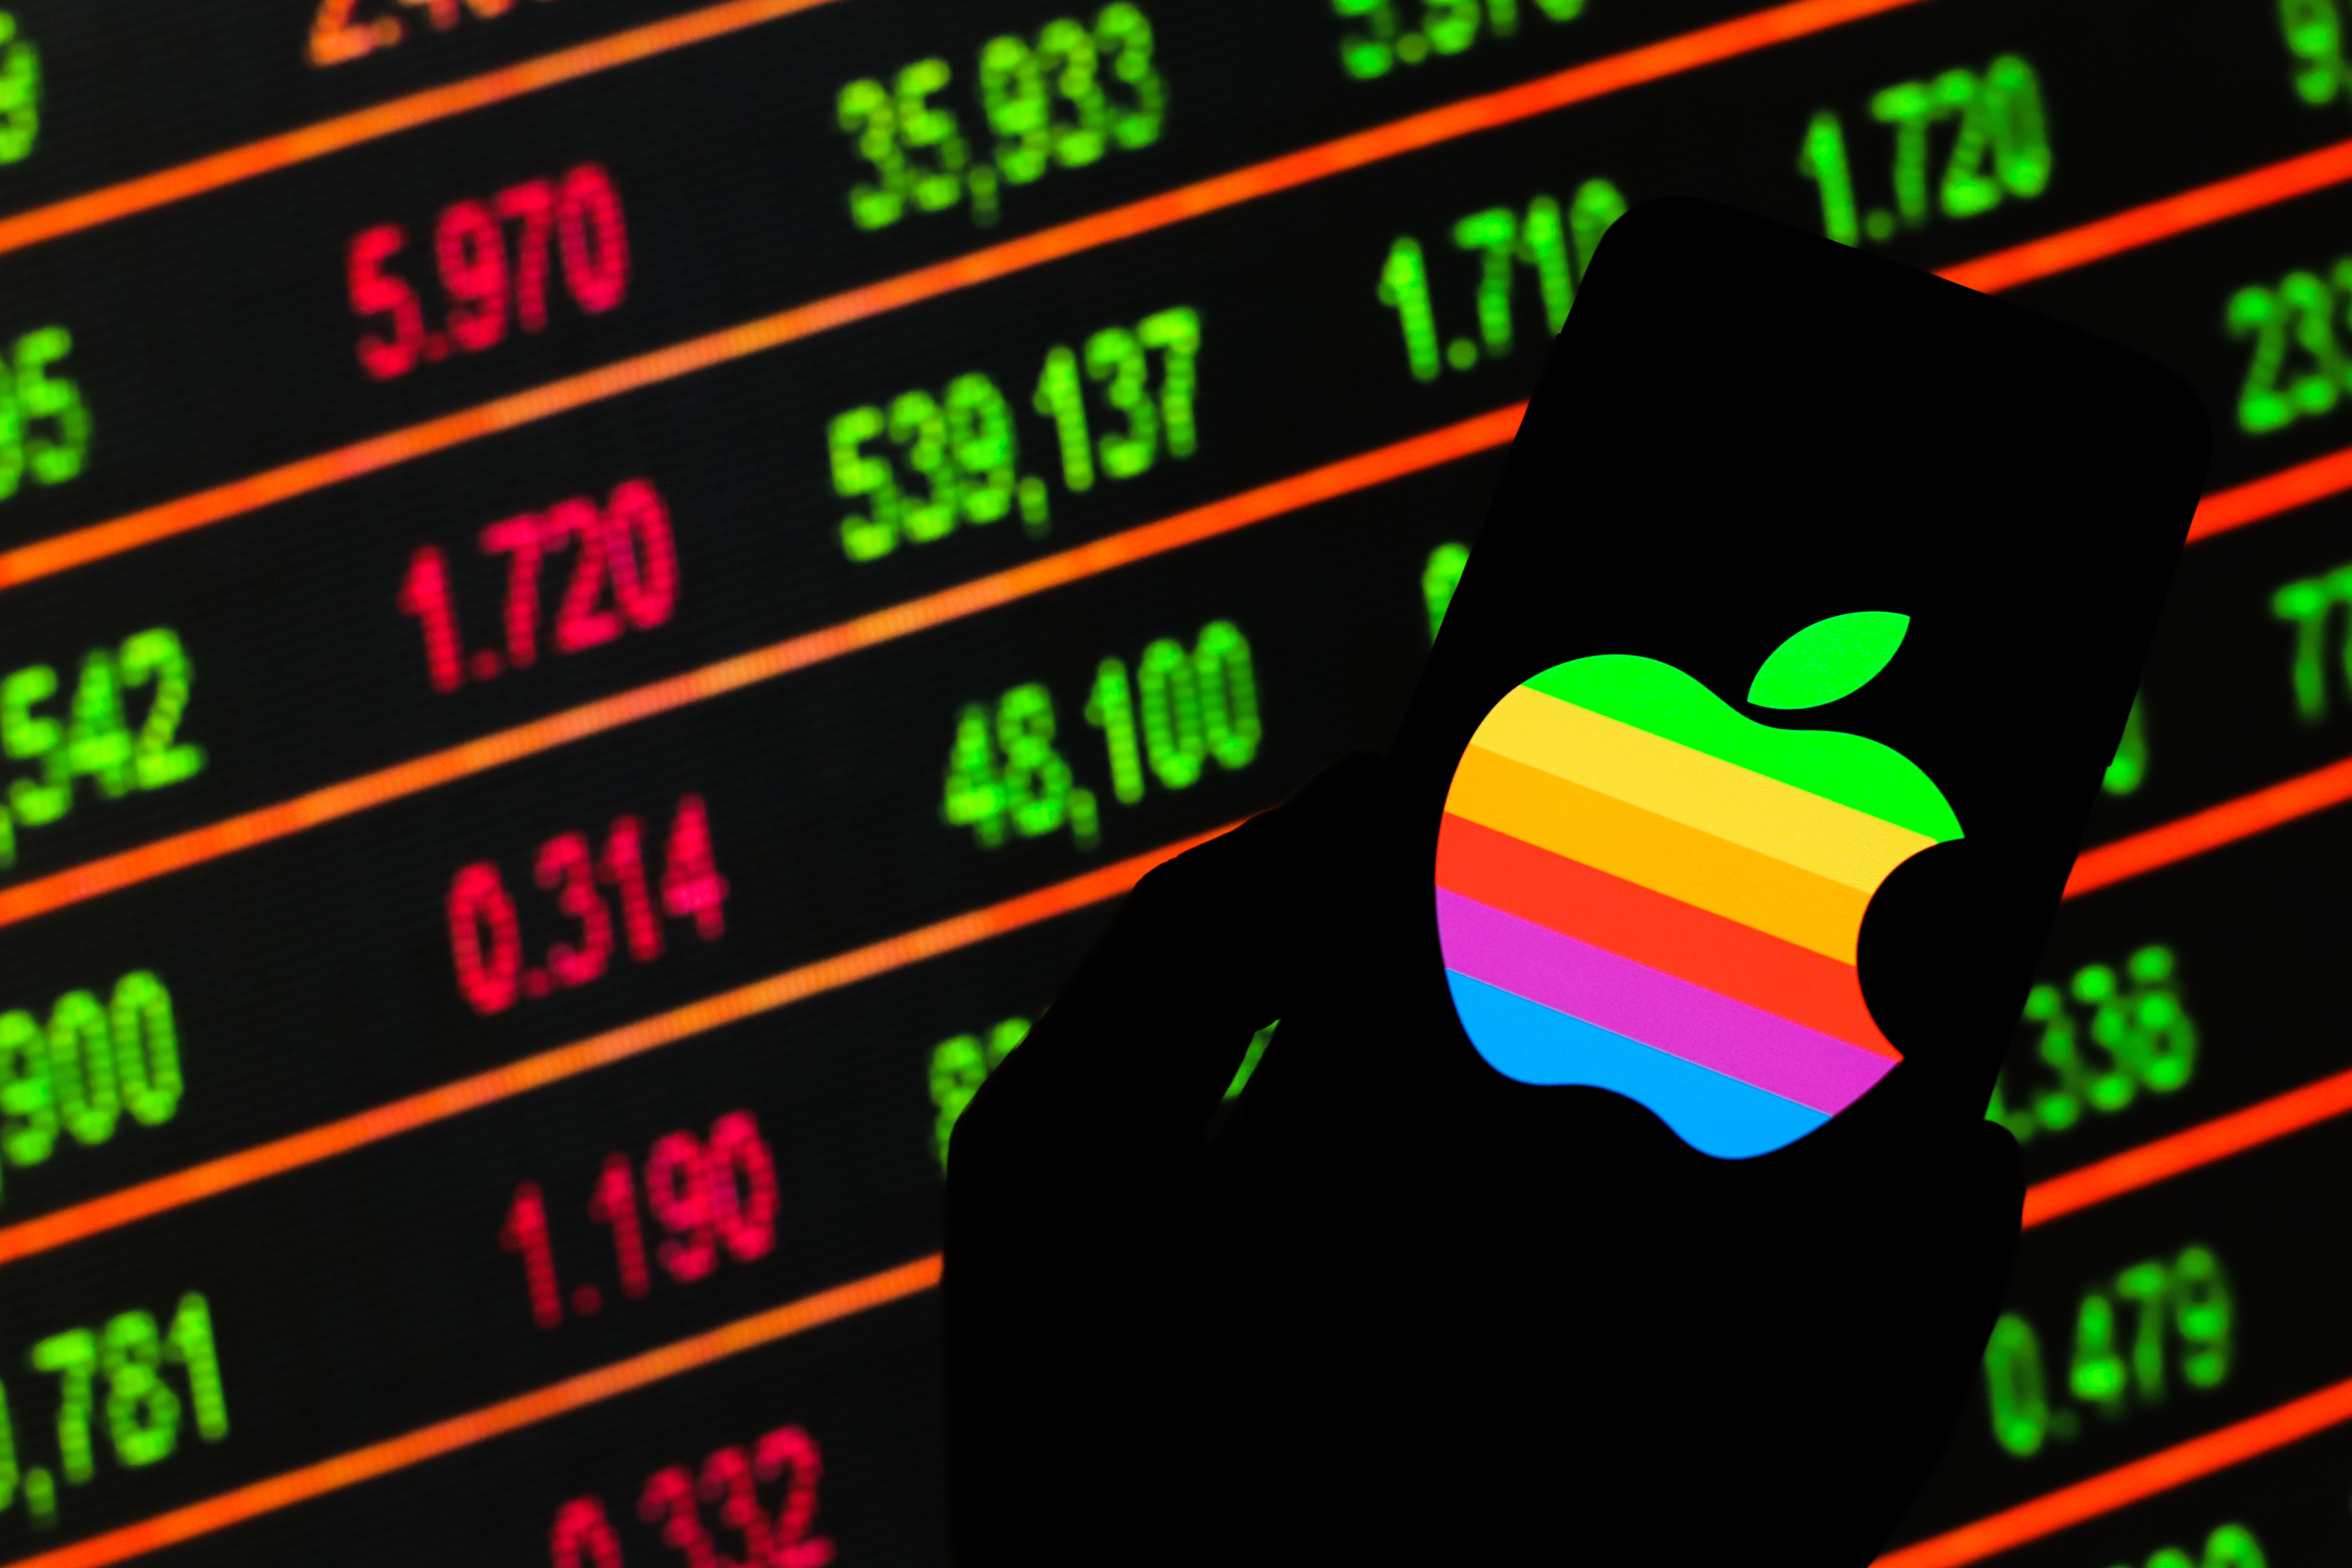 POLAND - 2020/03/13: In this photo illustration an Apple logo seen displayed on a smartphone. Stock market prices in the background as stock markets tumble all over the world. (Photo by Filip Radwanski/SOPA Images/LightRocket via Getty Images)